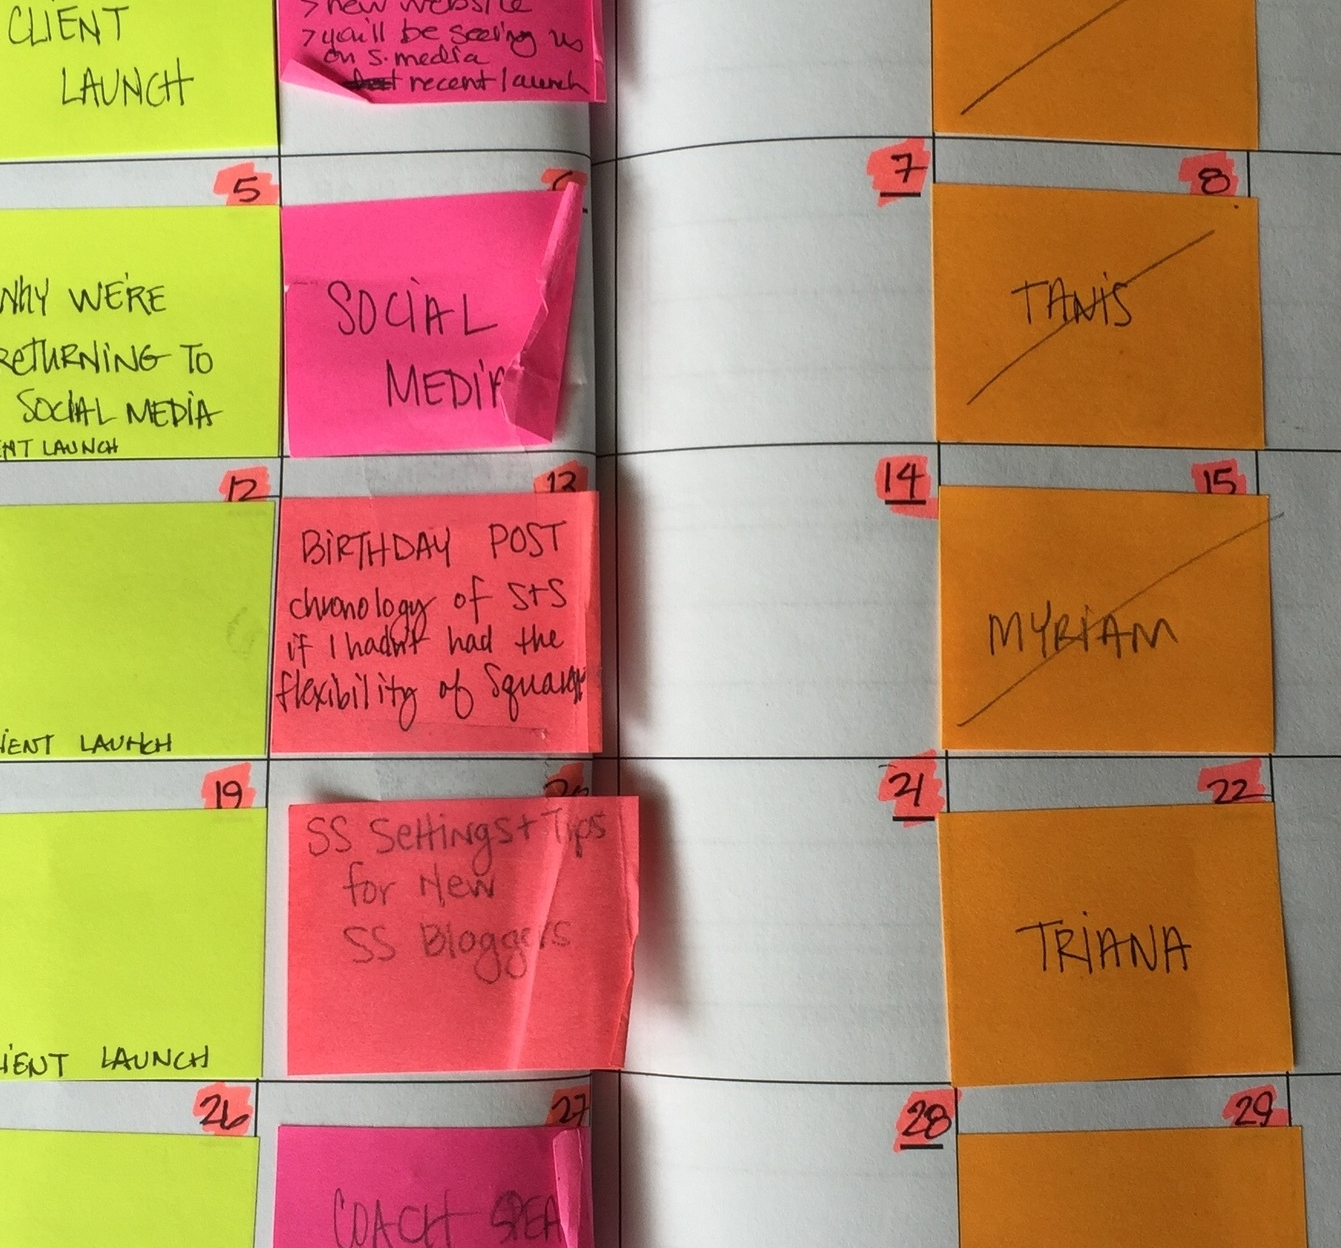 Each sticky note gets labeled with one of the ideas from my curated list. I select posts that directly support my goals for the month.